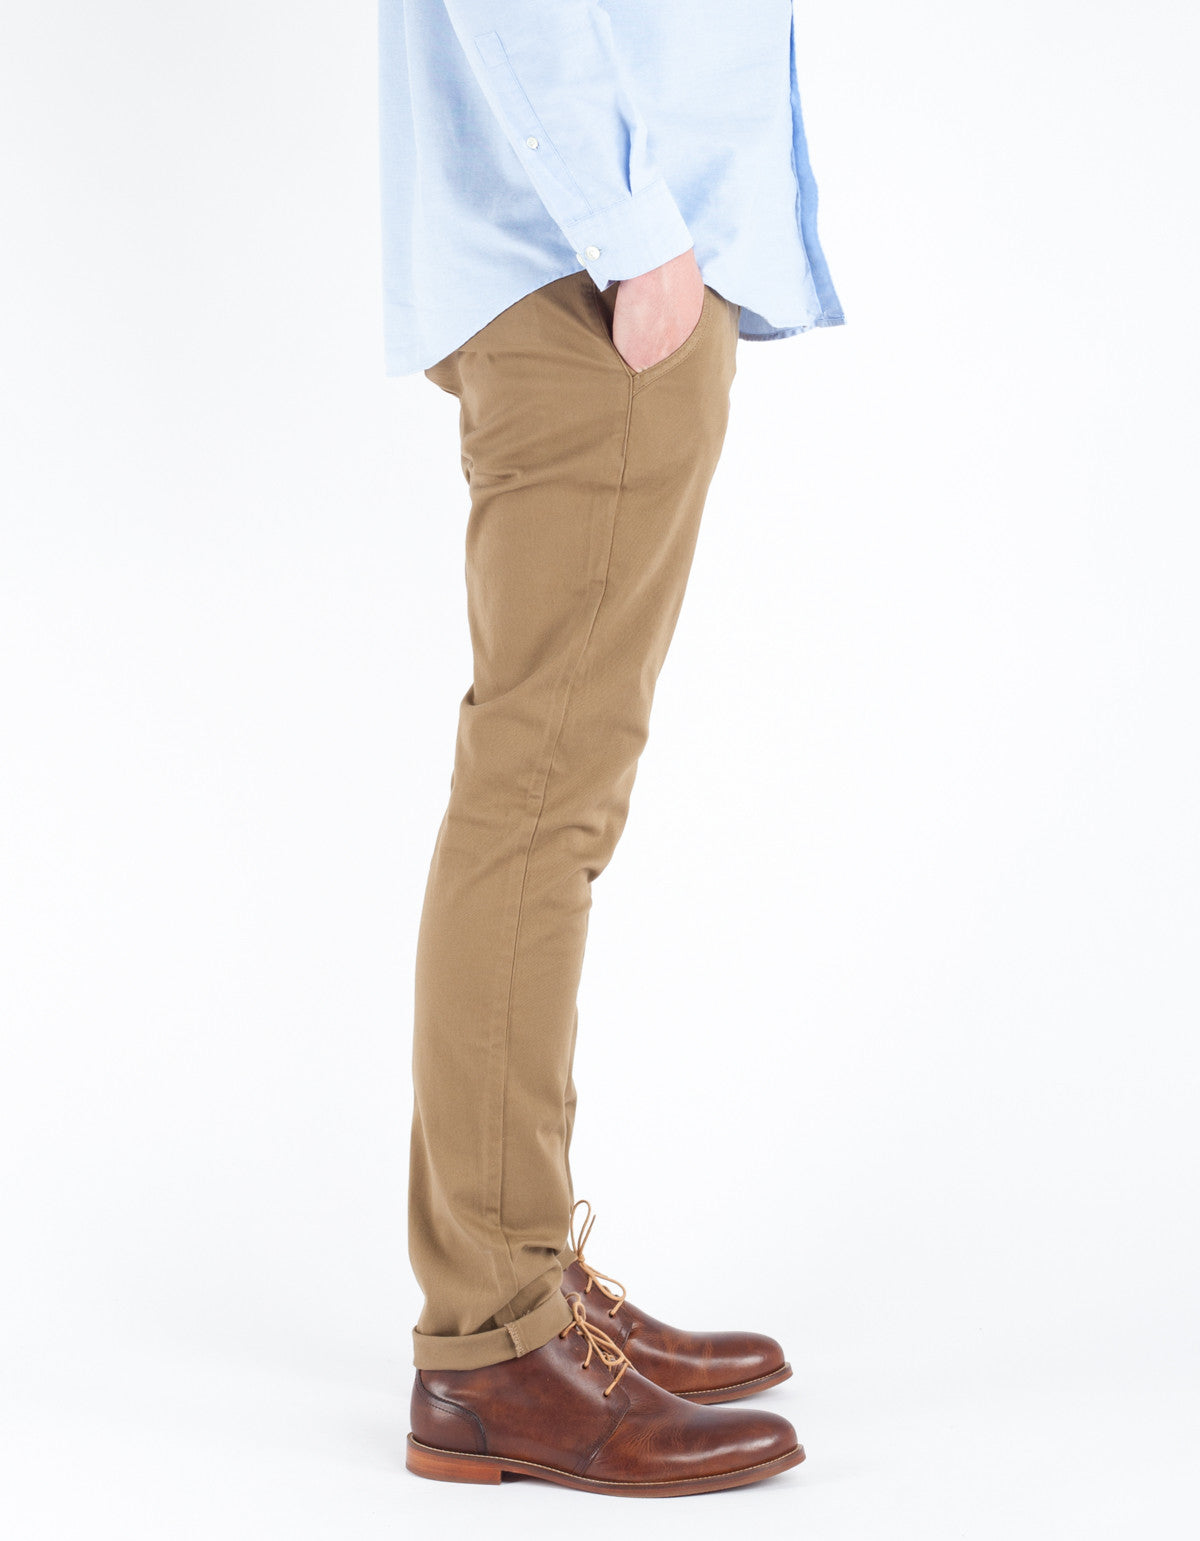 The Daily Co. Slim Chino Sand Khaki